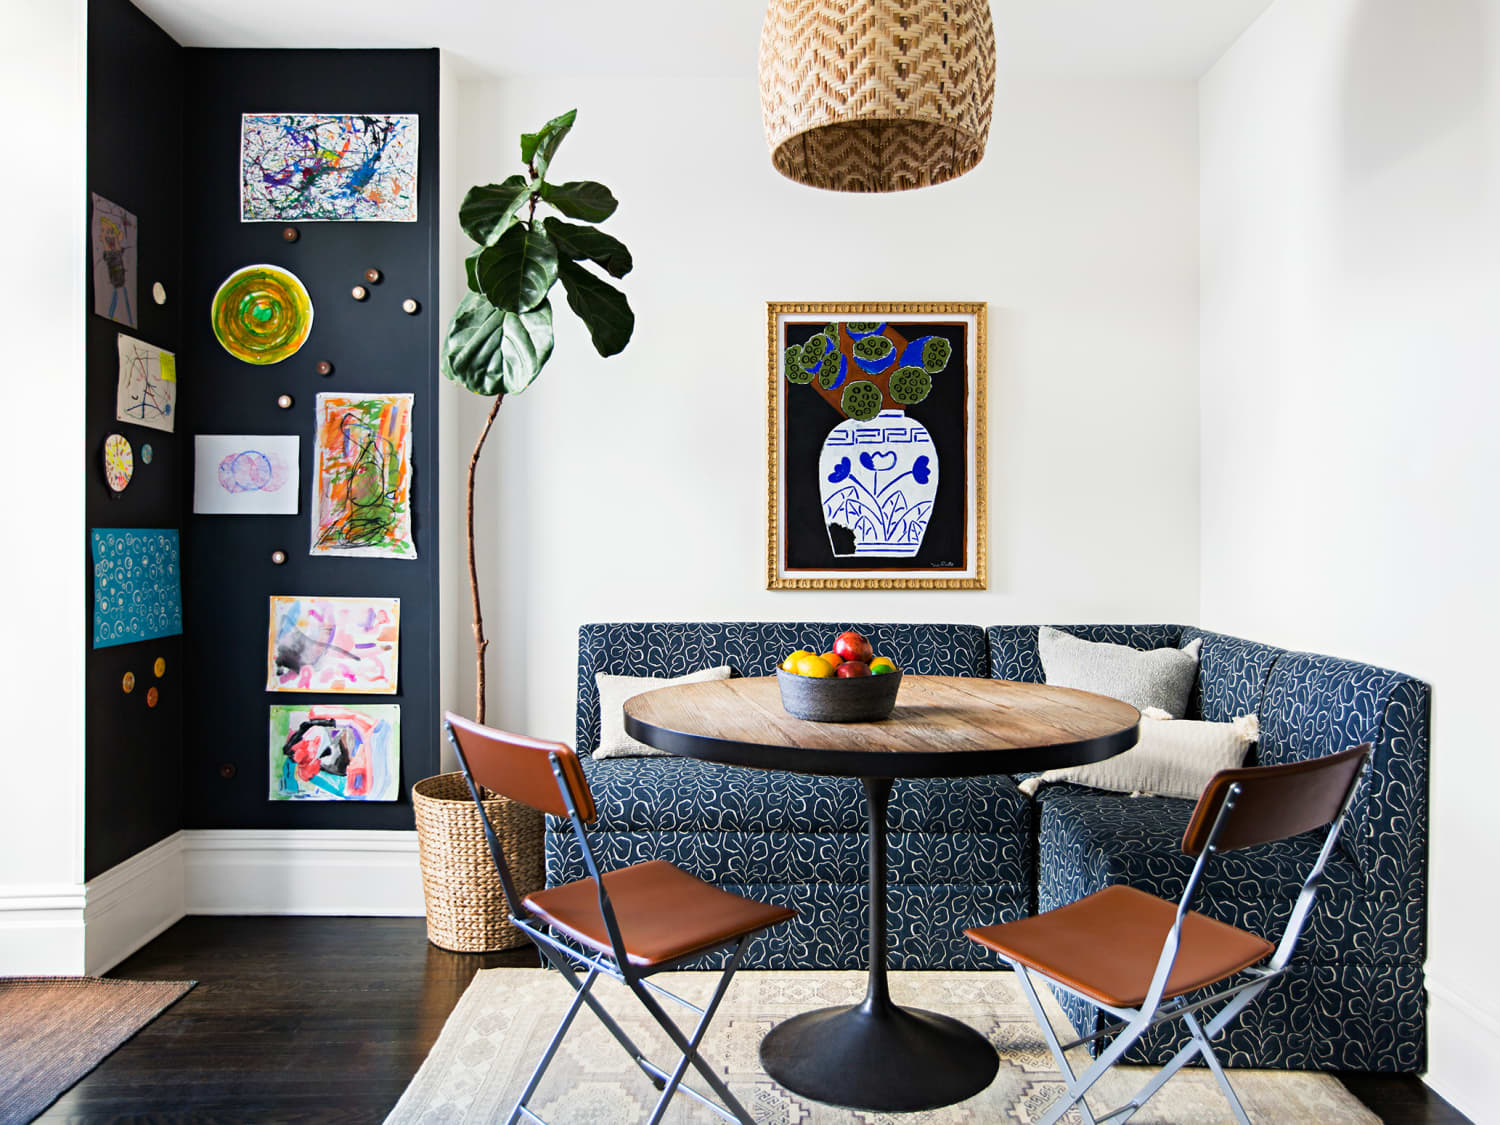 10 Best Small Space Dining Tables That Can Double As Desks Apartment Therapy